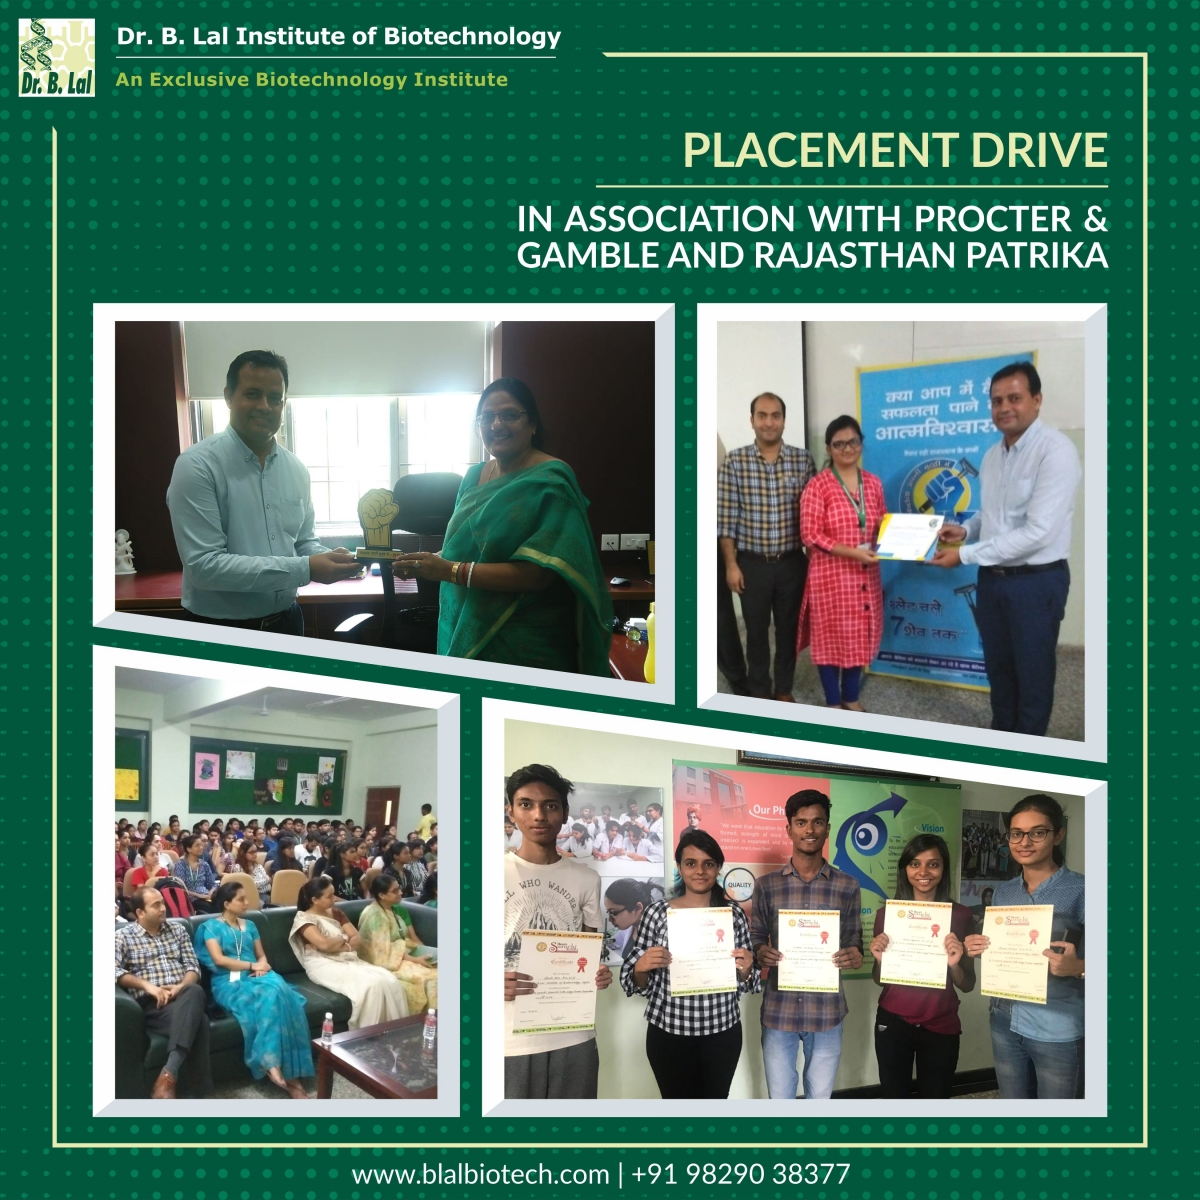 Placement Drive | Procter & Gamble and Rajasthan Patrika